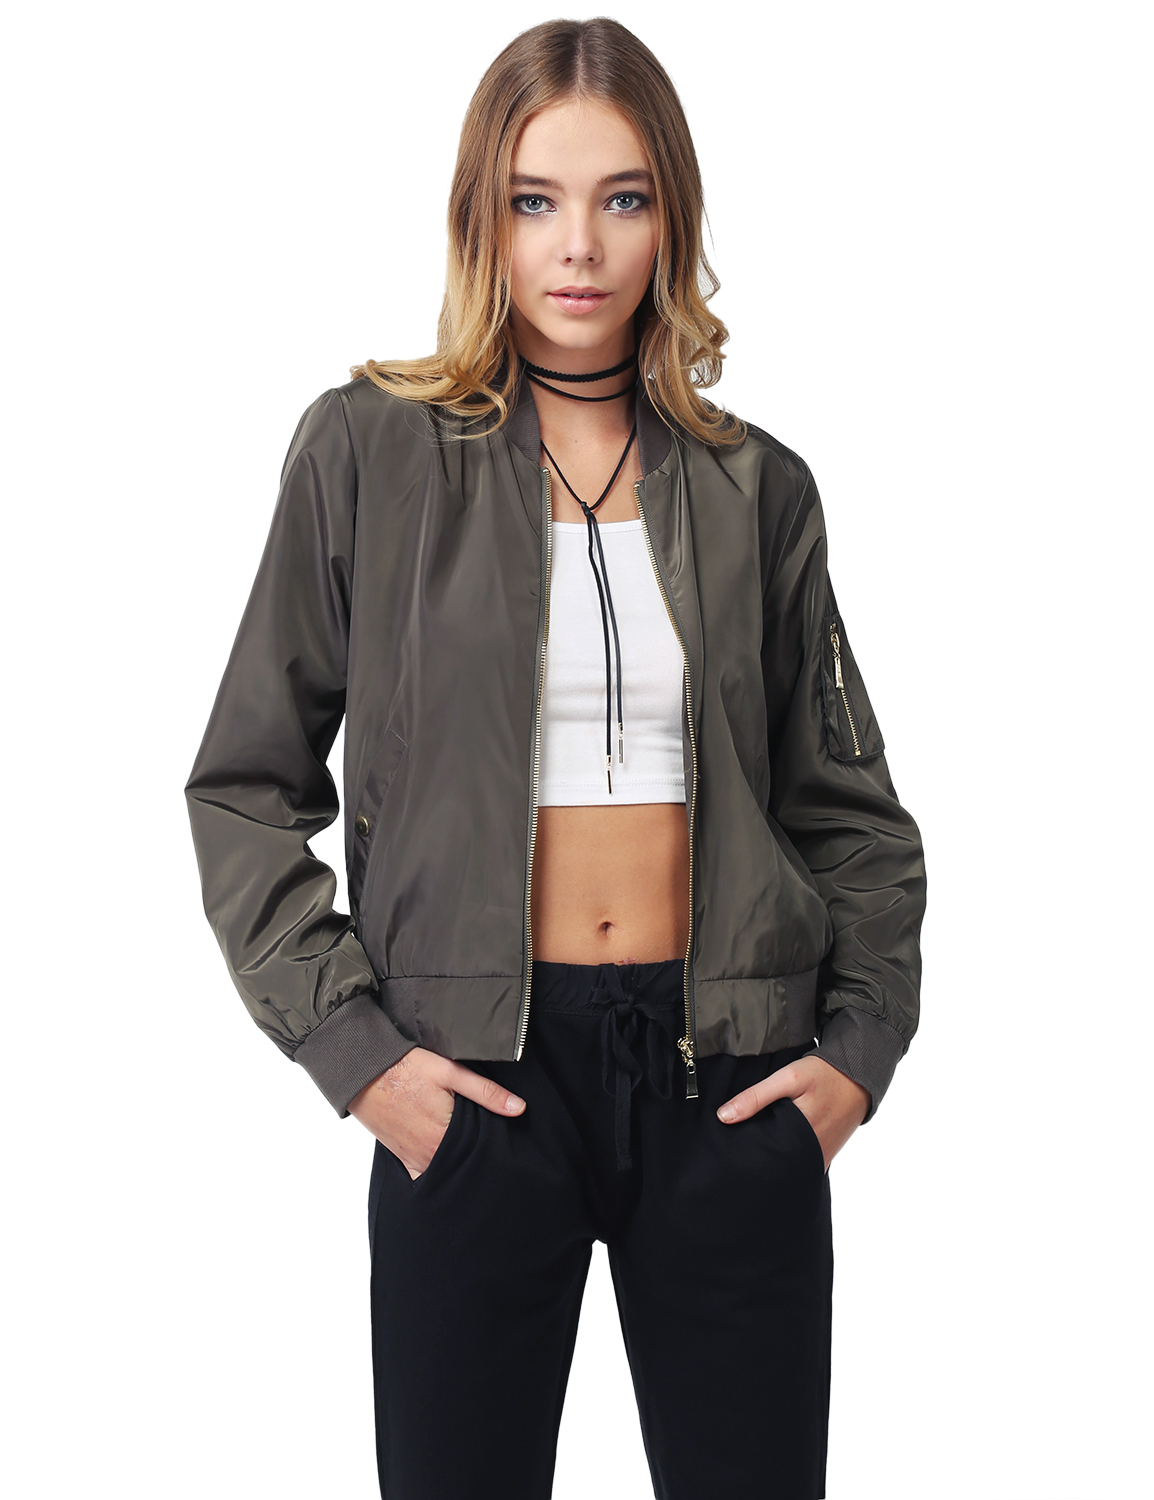 e7af937d1 Details about FashionOutfit Women's Solid Long Sleeves Zipper Pocket Army  Flight Bomber Jacket